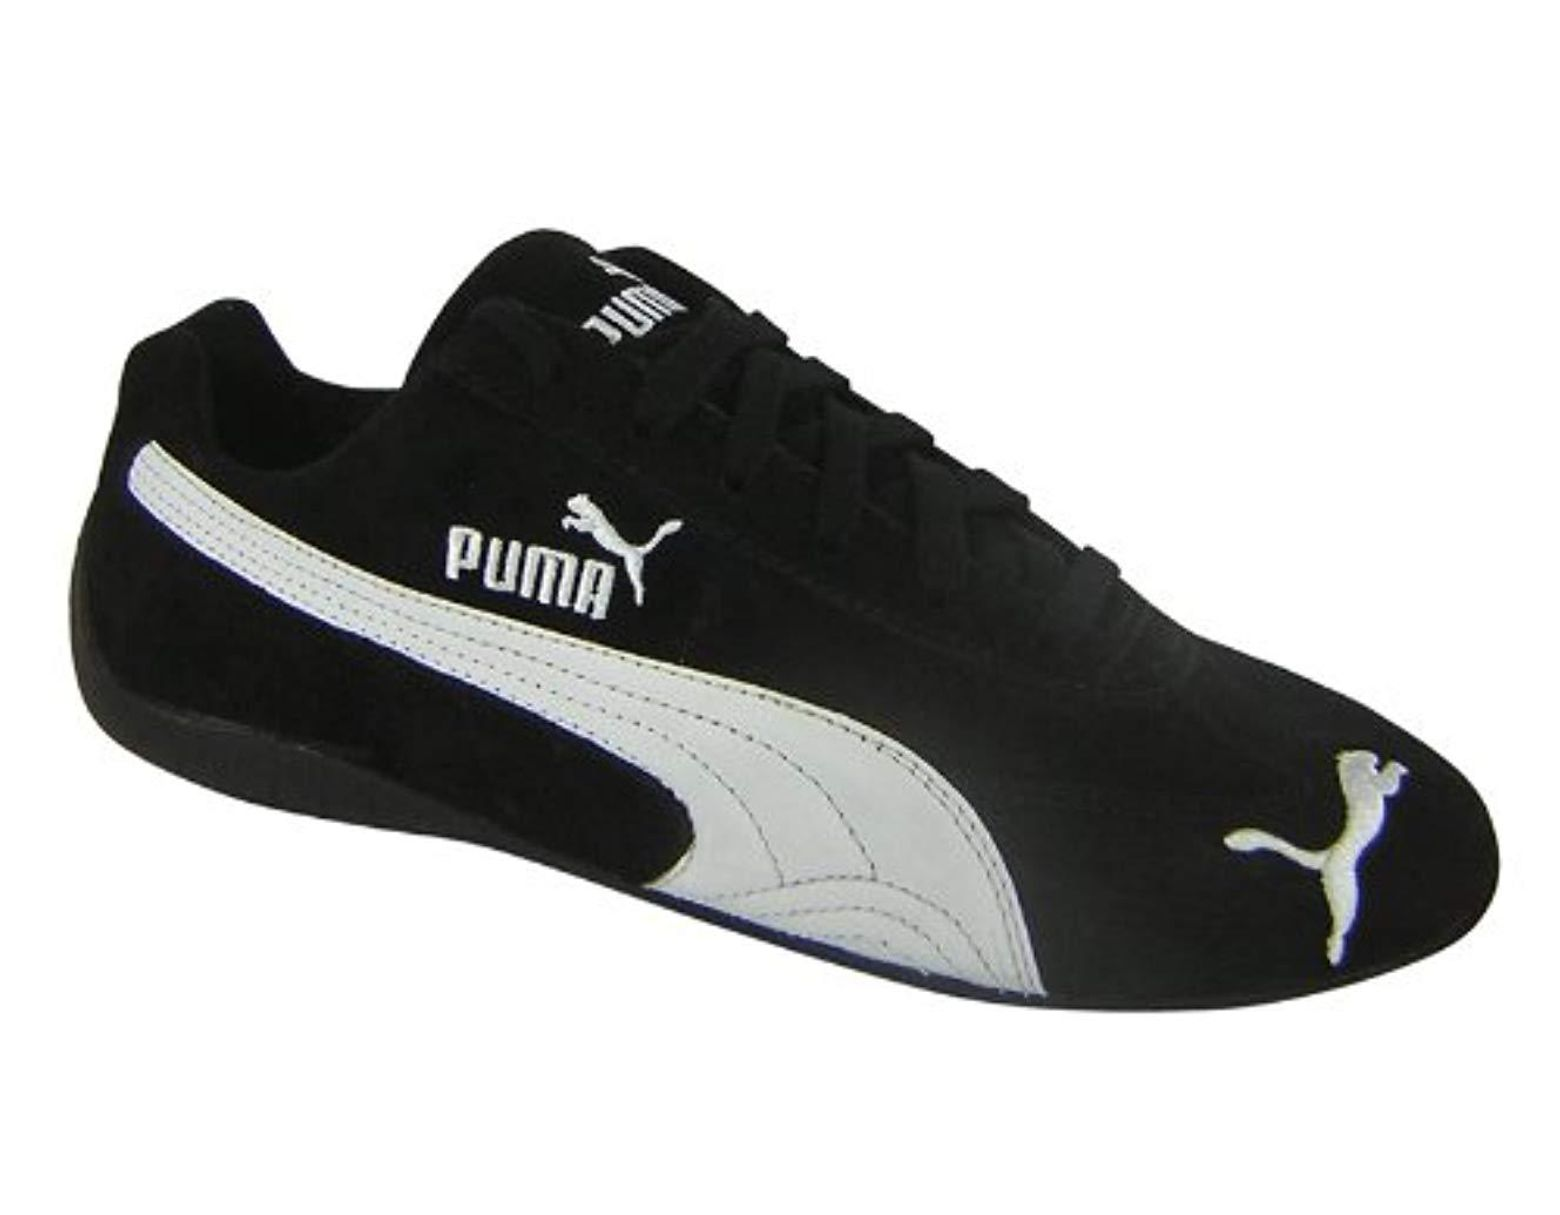 meilleure sélection c029d 81075 PUMA Unisex Adults' Speed Cat Low-top Sneakers in Black for ...